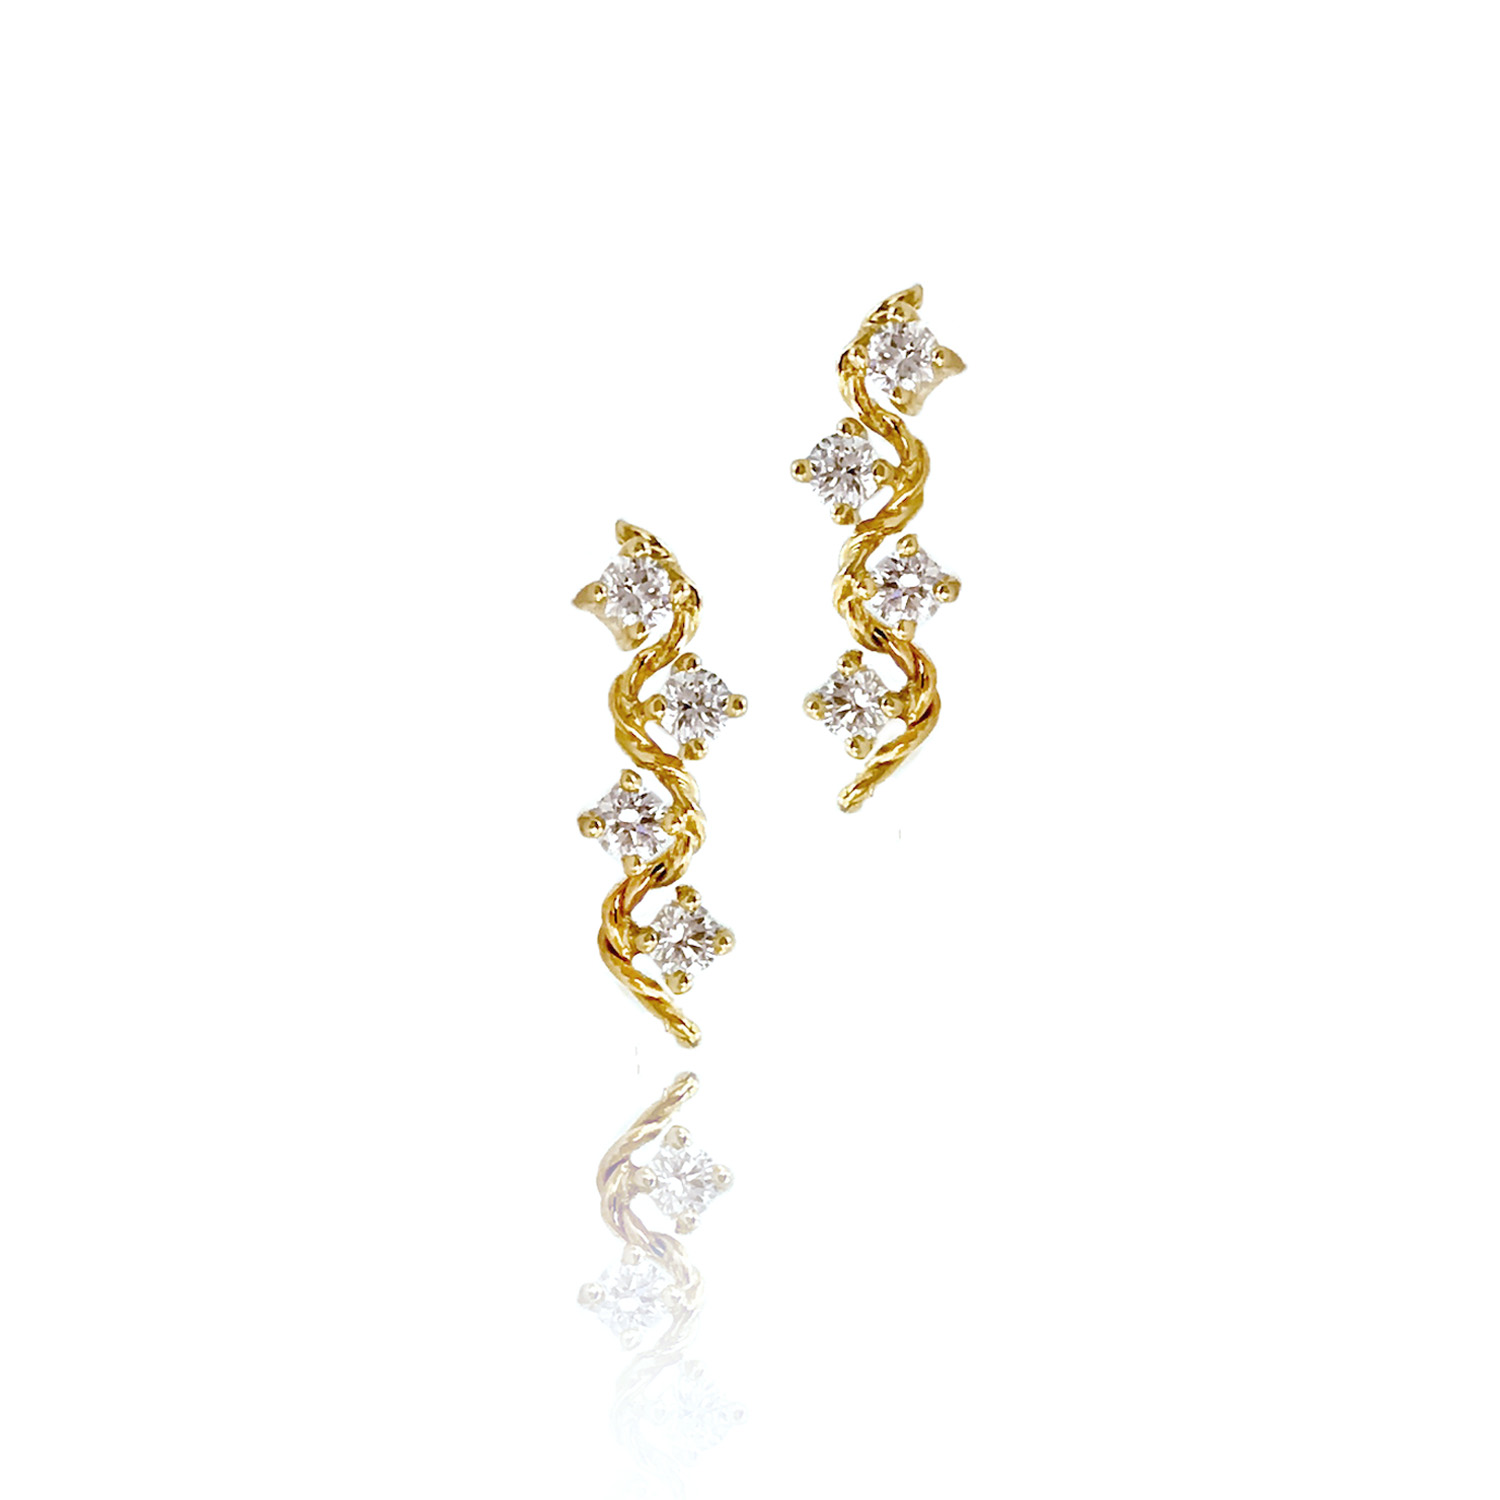 18k-diamond-twist-wave-Enlace-Post-Earrings-Jewelyrie-Tulle-Studs-Collection-RIV-E-02-M